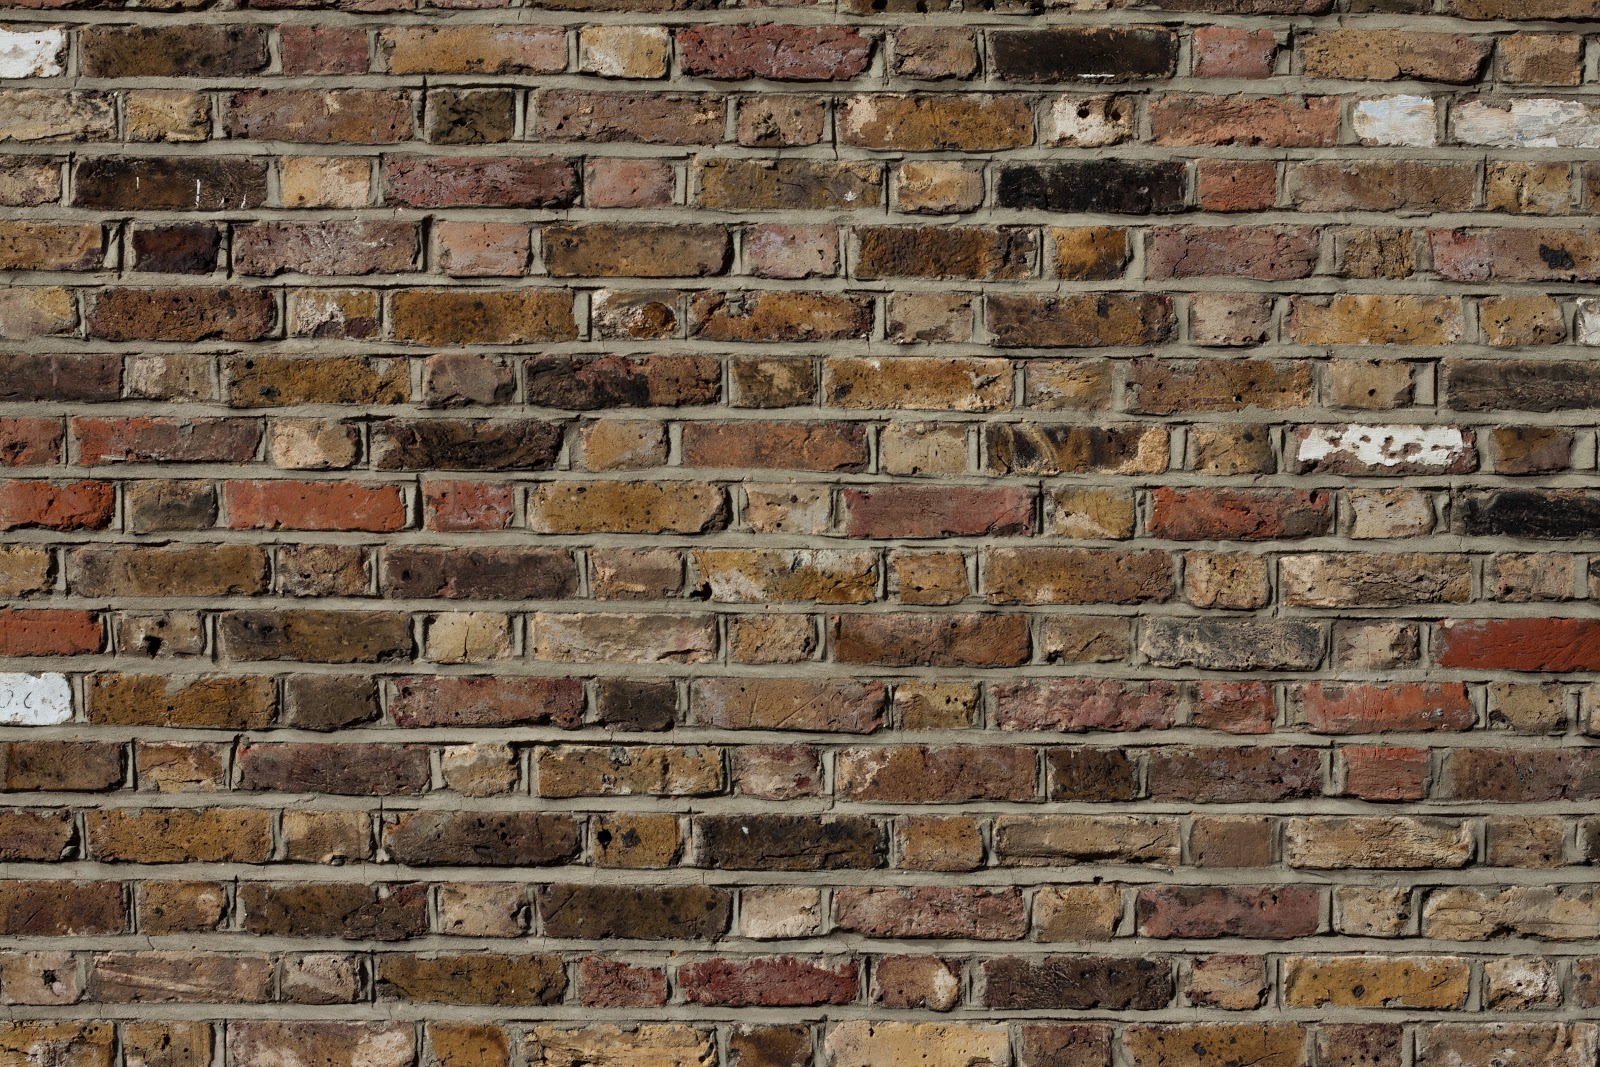 ... Resolution Seamless Textures: Colourful Brick & Indented Brick Texture